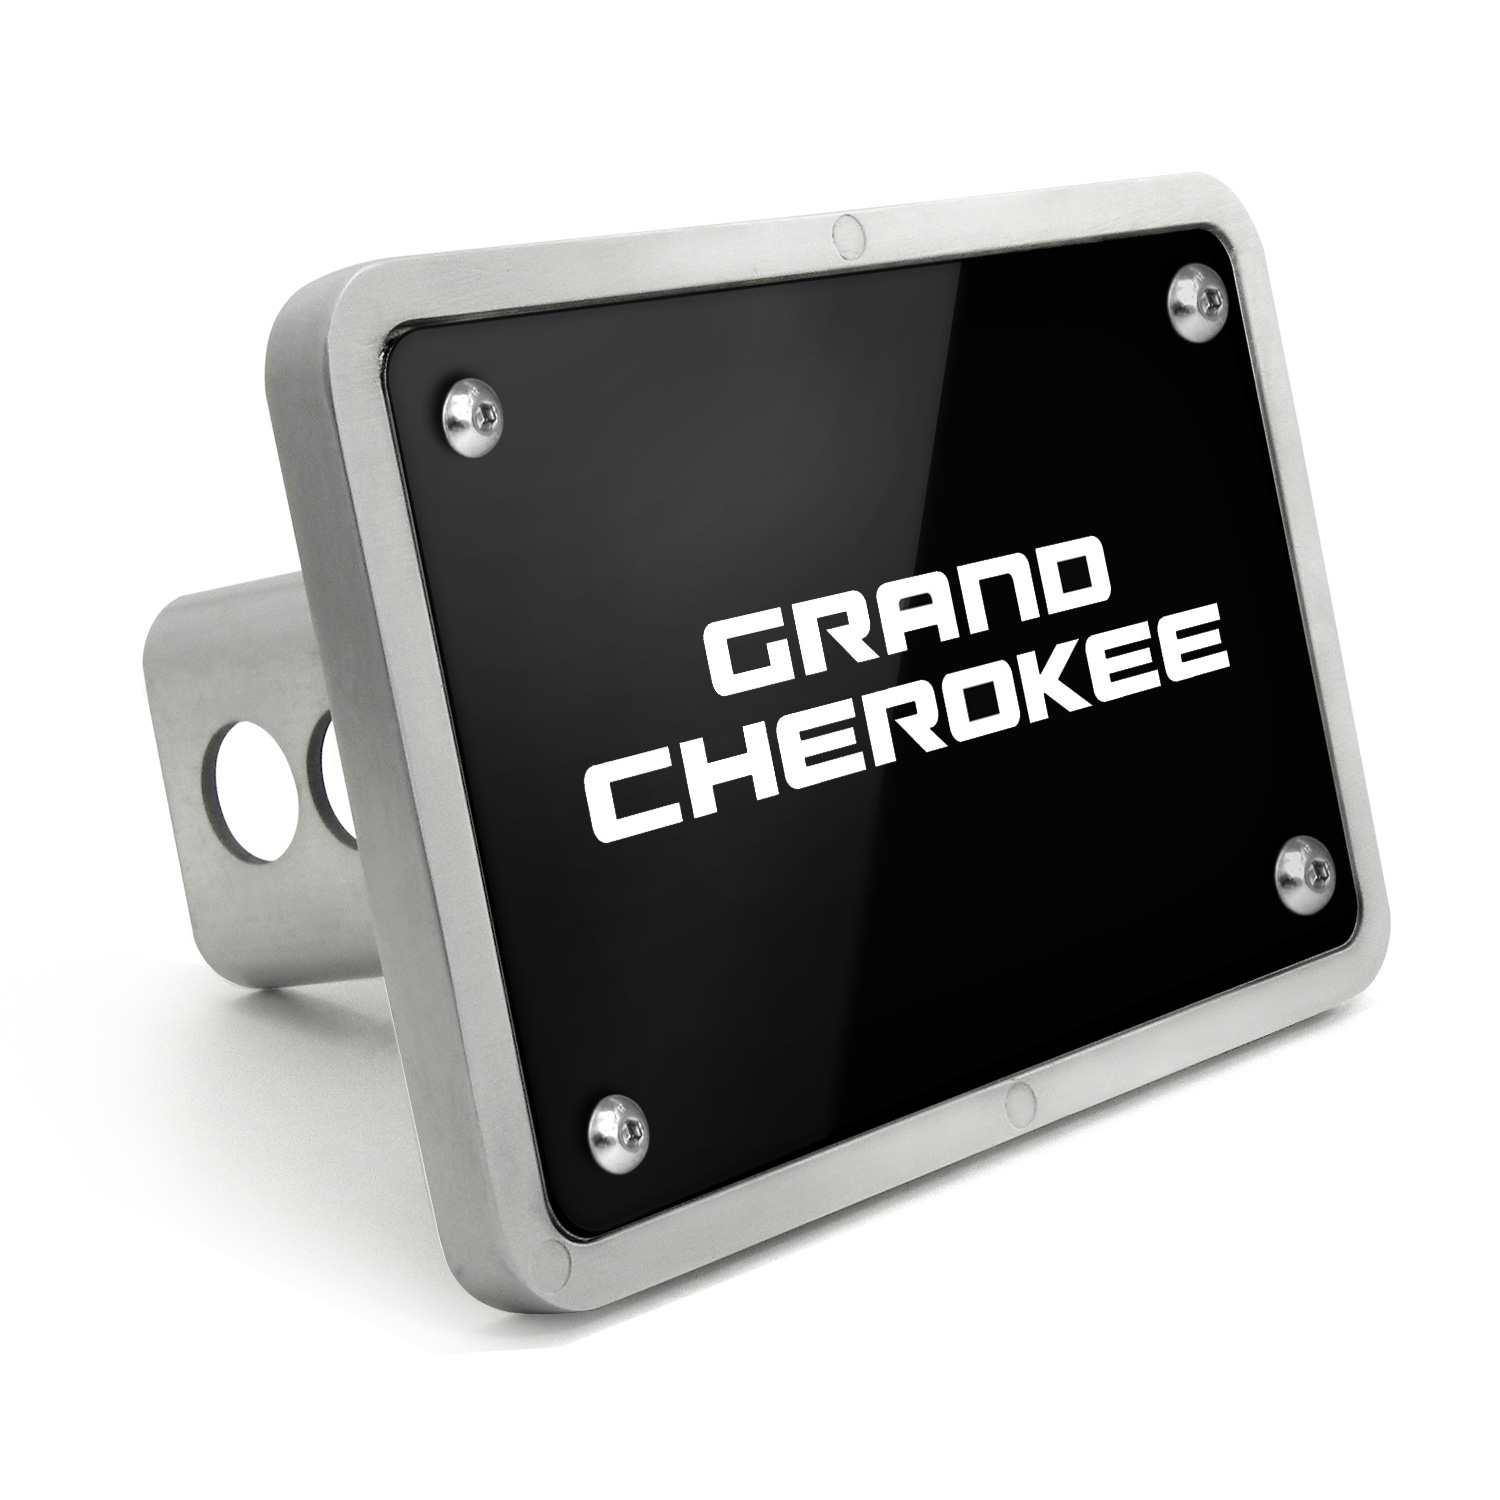 Jeep Grand Cherokee UV Graphic Black Billet Aluminum 2 inch Tow Hitch Cover